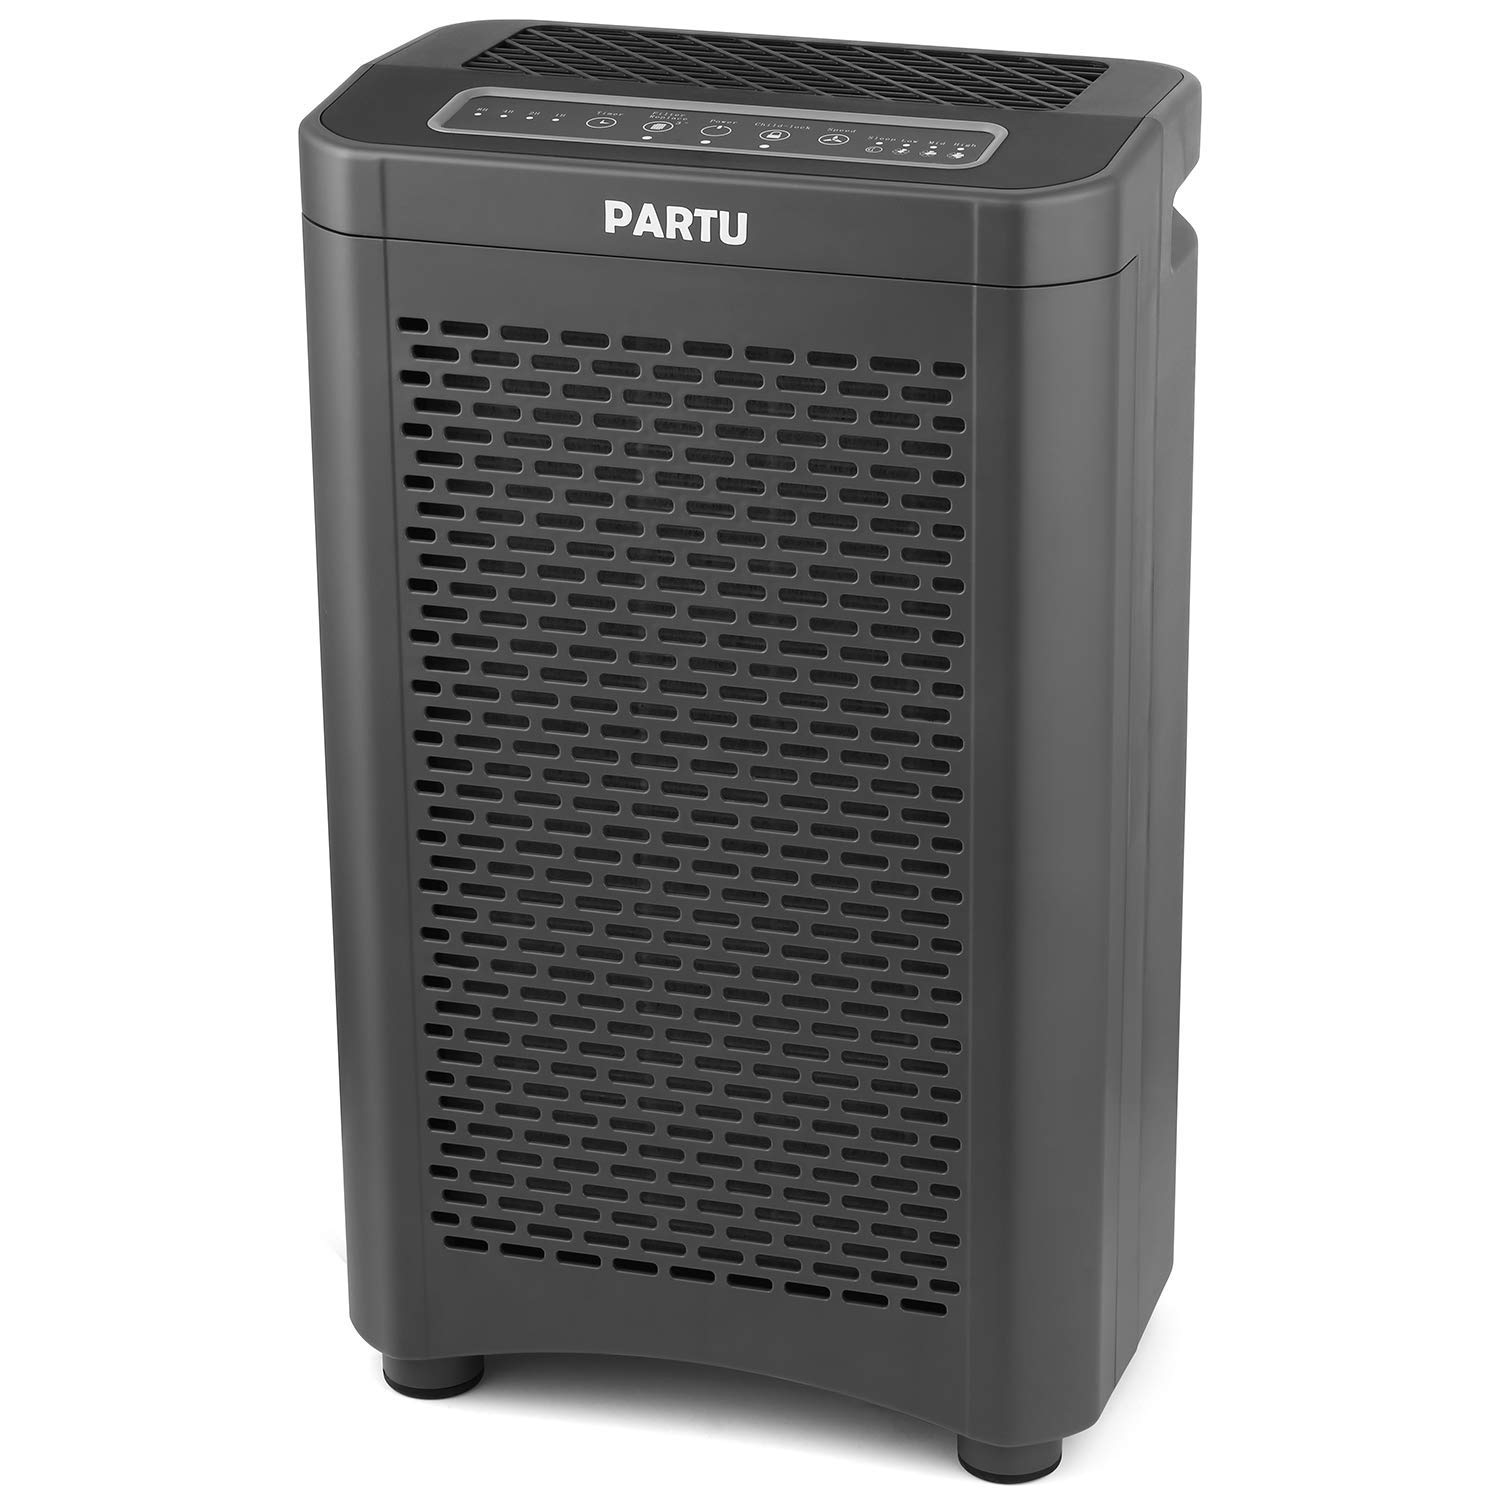 PARTU Air Purifier True HEPA Filter for Large Room with 28dB, Air Cleaner for Dust, Pollen, Pet Hair, Mold, Eliminate Odor Relieve Allergies Symptom, Child – Lock 4 Timer Modes